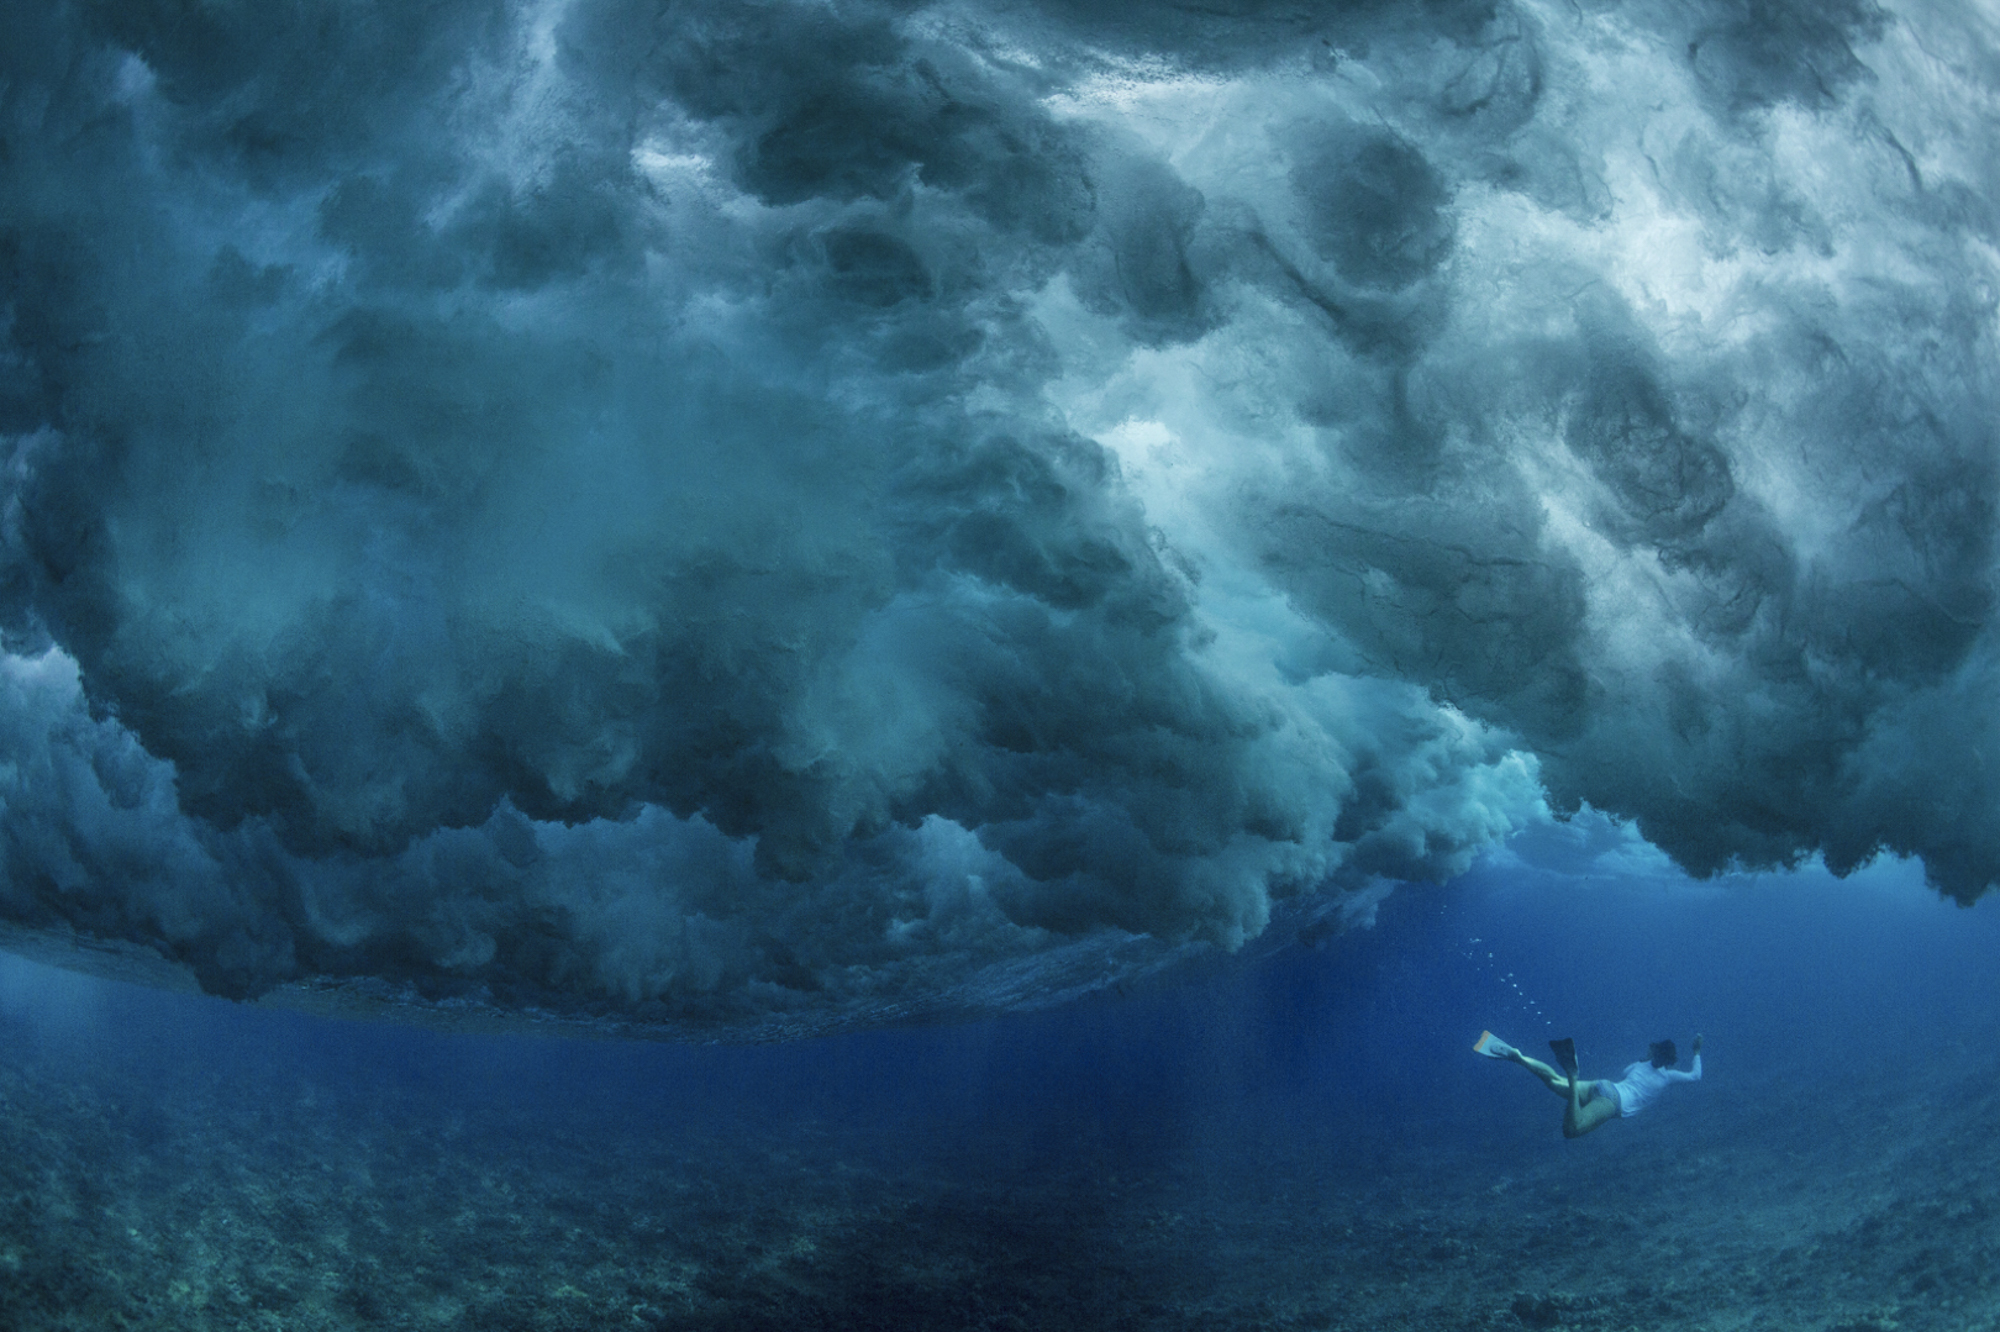 This Incredible Organization Uses Photos to Tell Stories of the Ocean and Inspire Change